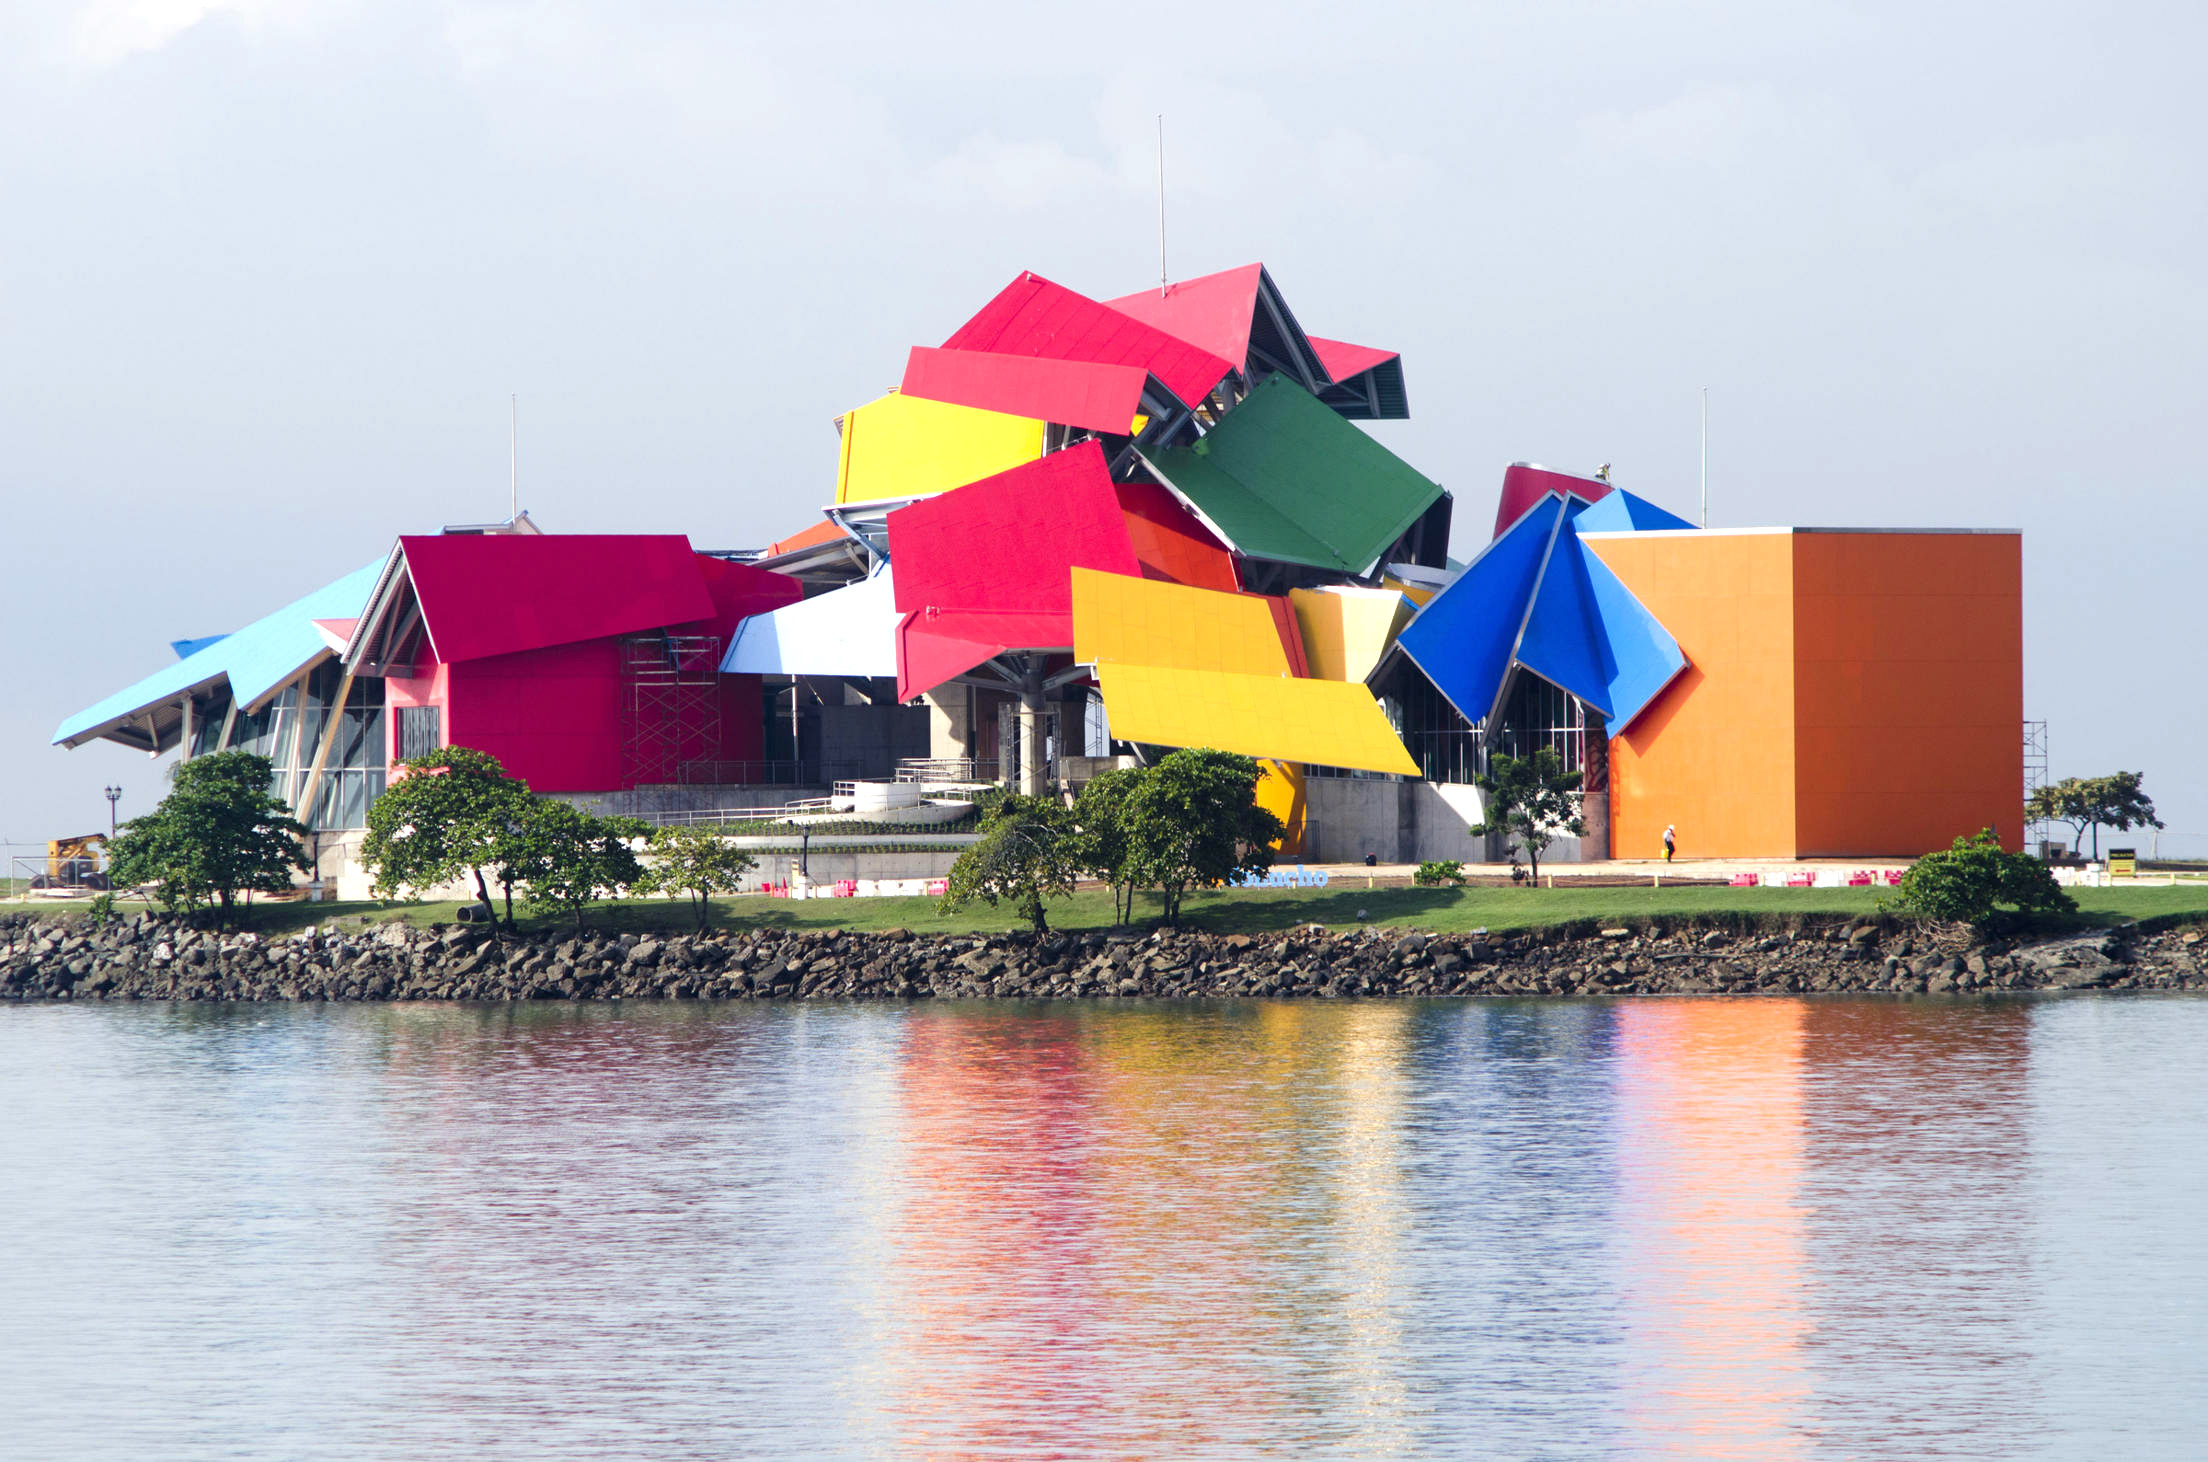 futuristic-attractions-biomuseo